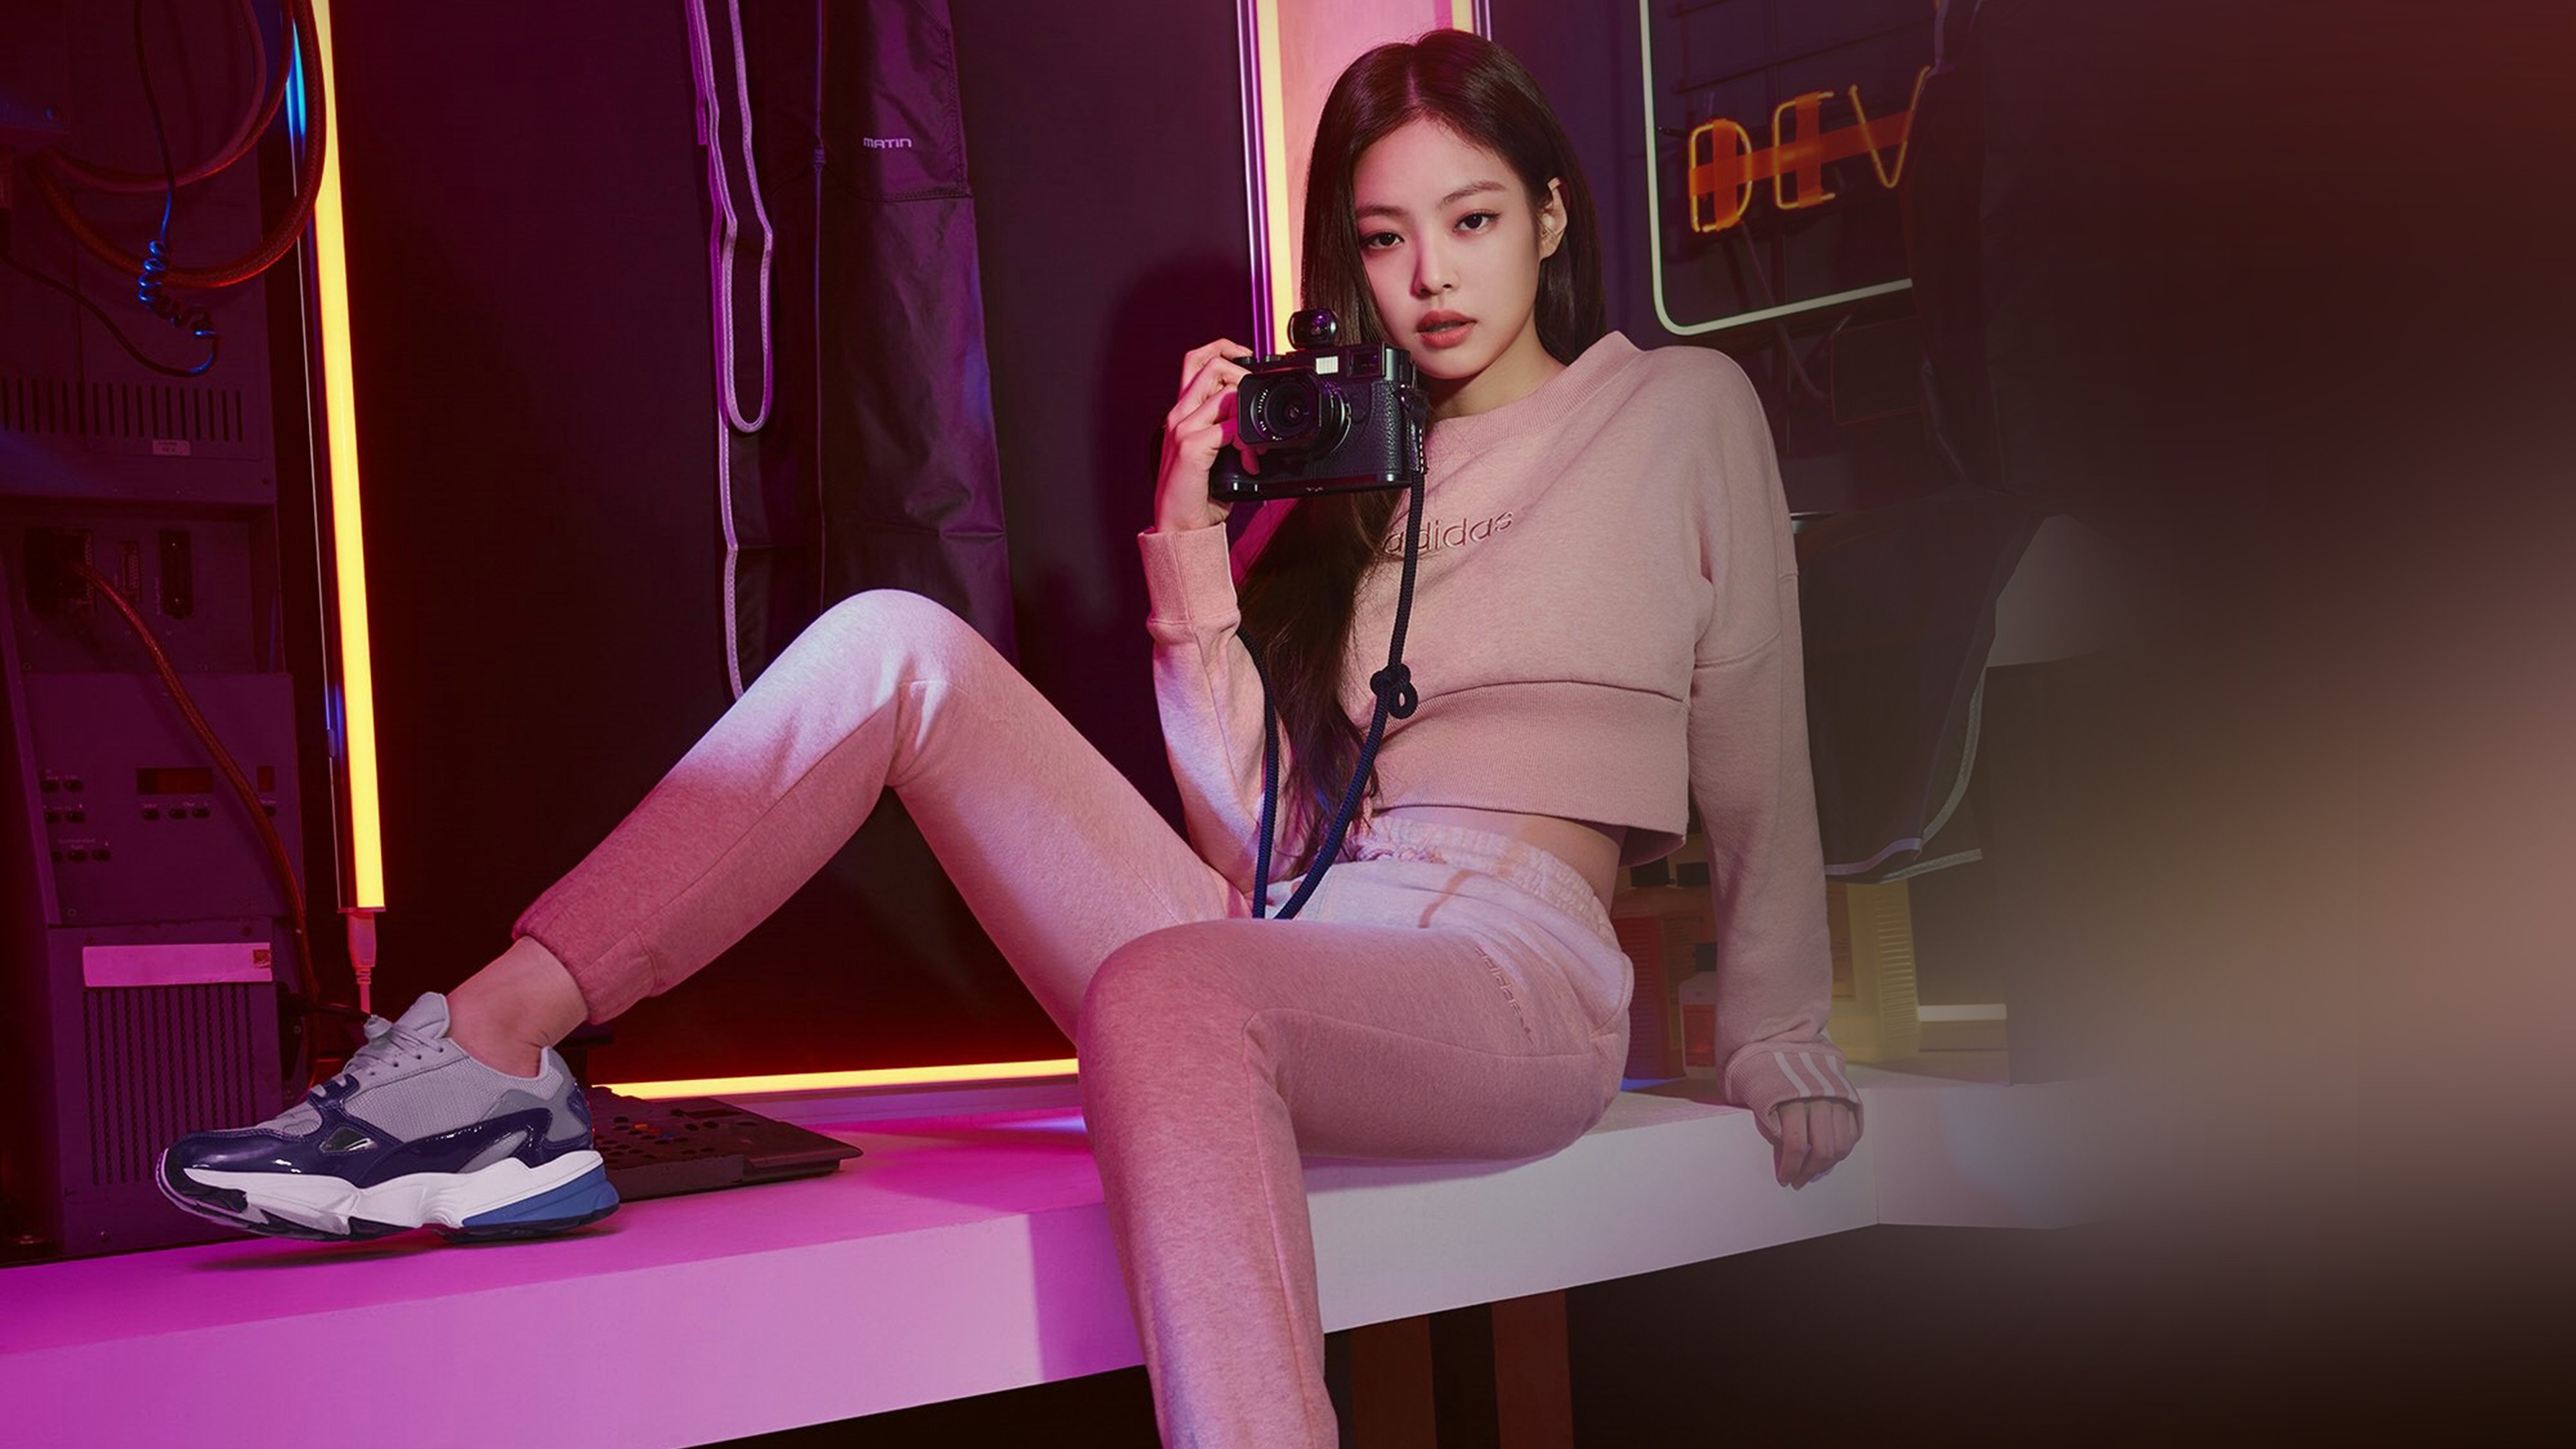 Blackpink Jennie Adidas Hd Music 4k Wallpapers Images Backgrounds Photos And Pictures